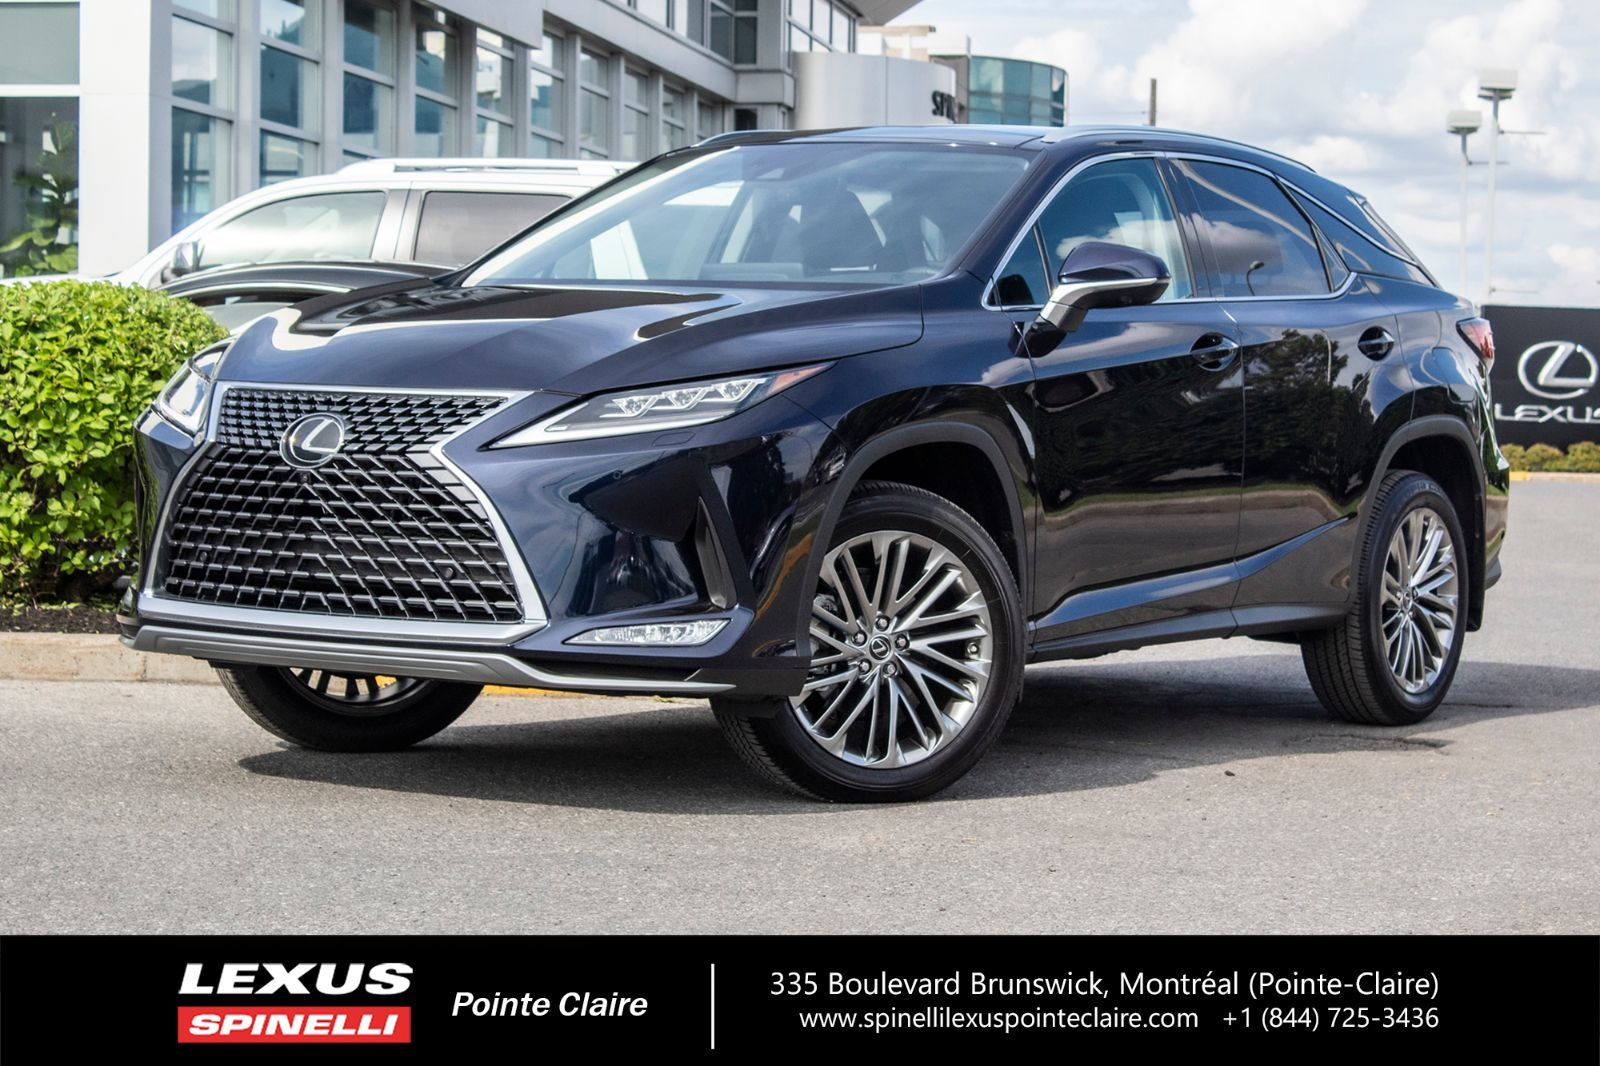 2020 Lexus Rx 350 Executive Package Panoramic Roof Used For Sale In Head Up Display Mark Levinson Audio System And More